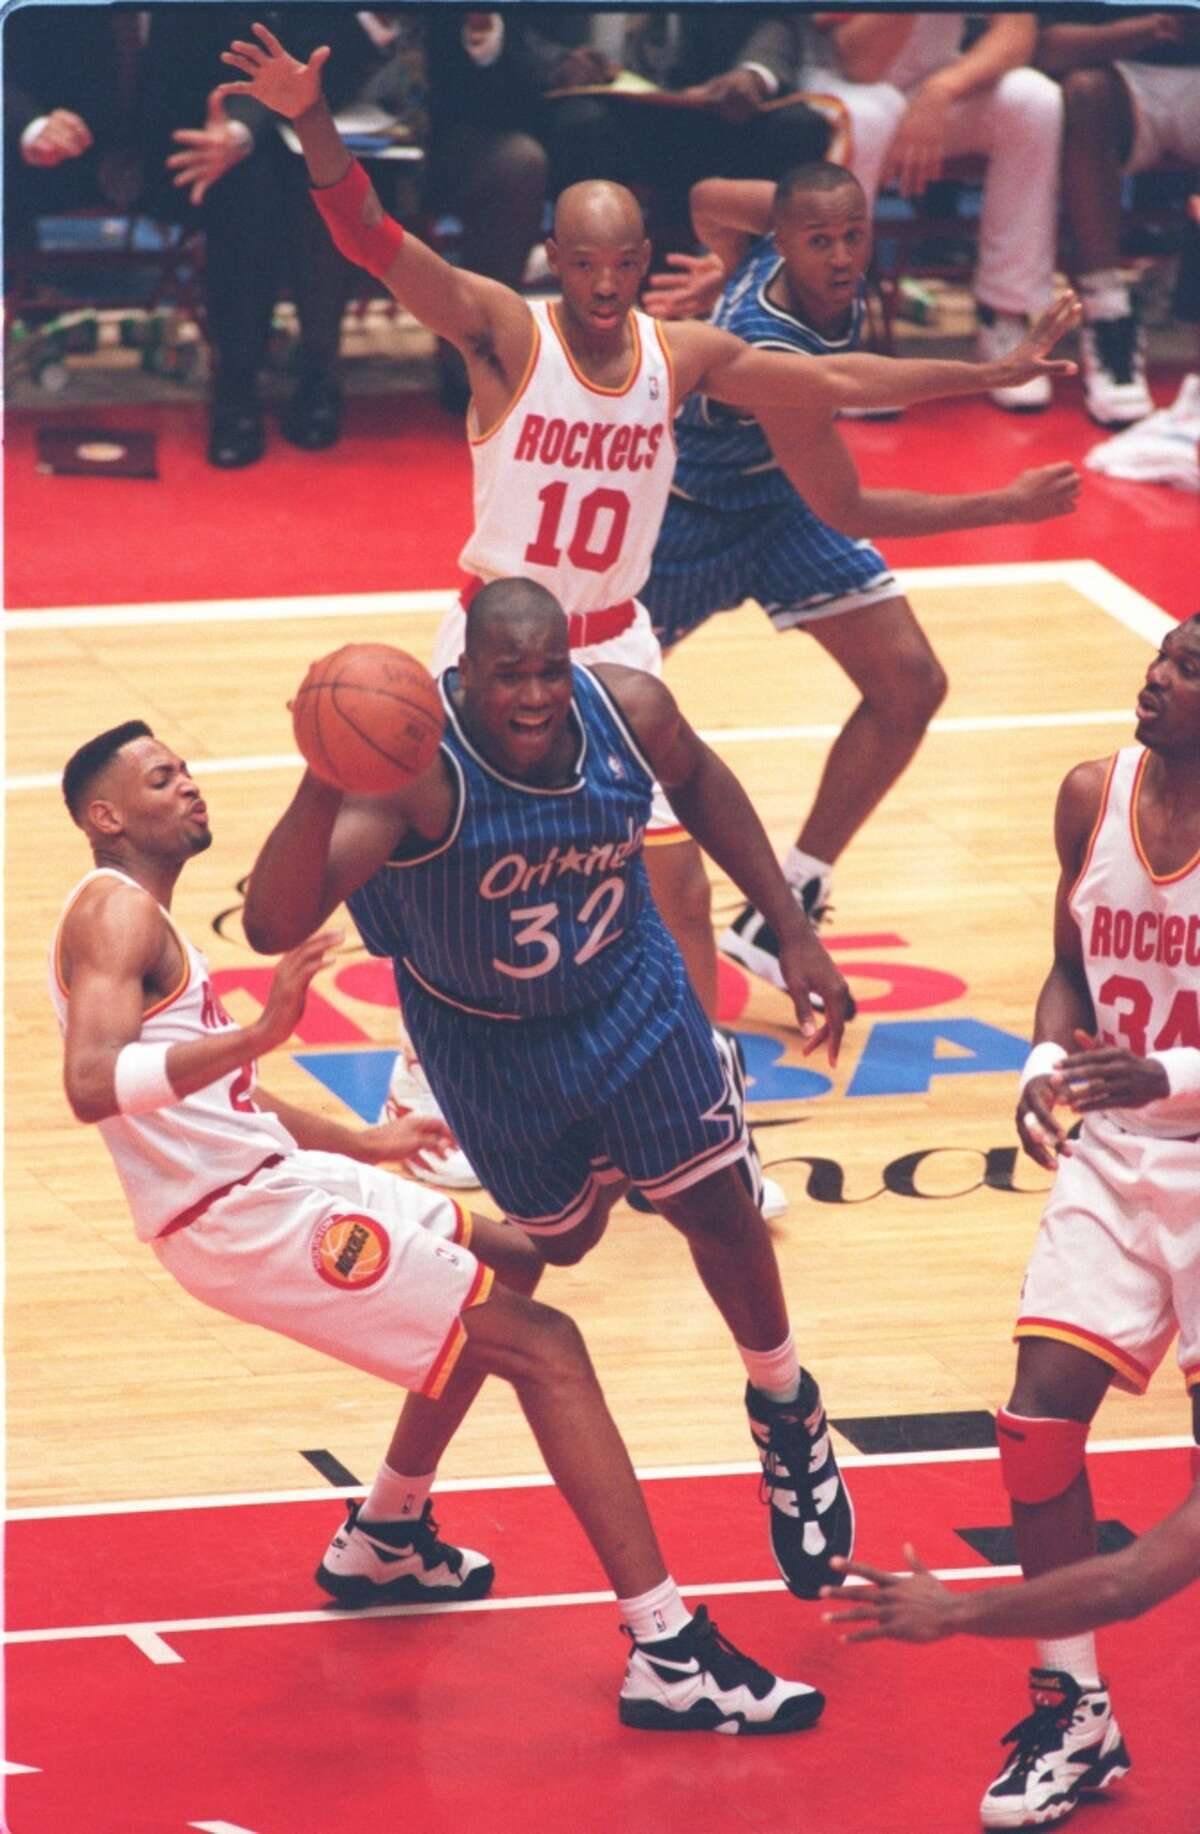 06/14/1995 - Houston Rockets vs. Orlando Magic: game 4 of the 1995 NBA Finals. Rockets' Robert Horry, Magic's Shaquille O'Neal (32), Rockets' Hakeem Olajuwon (34), and Rockets' Sam Cassell (10).